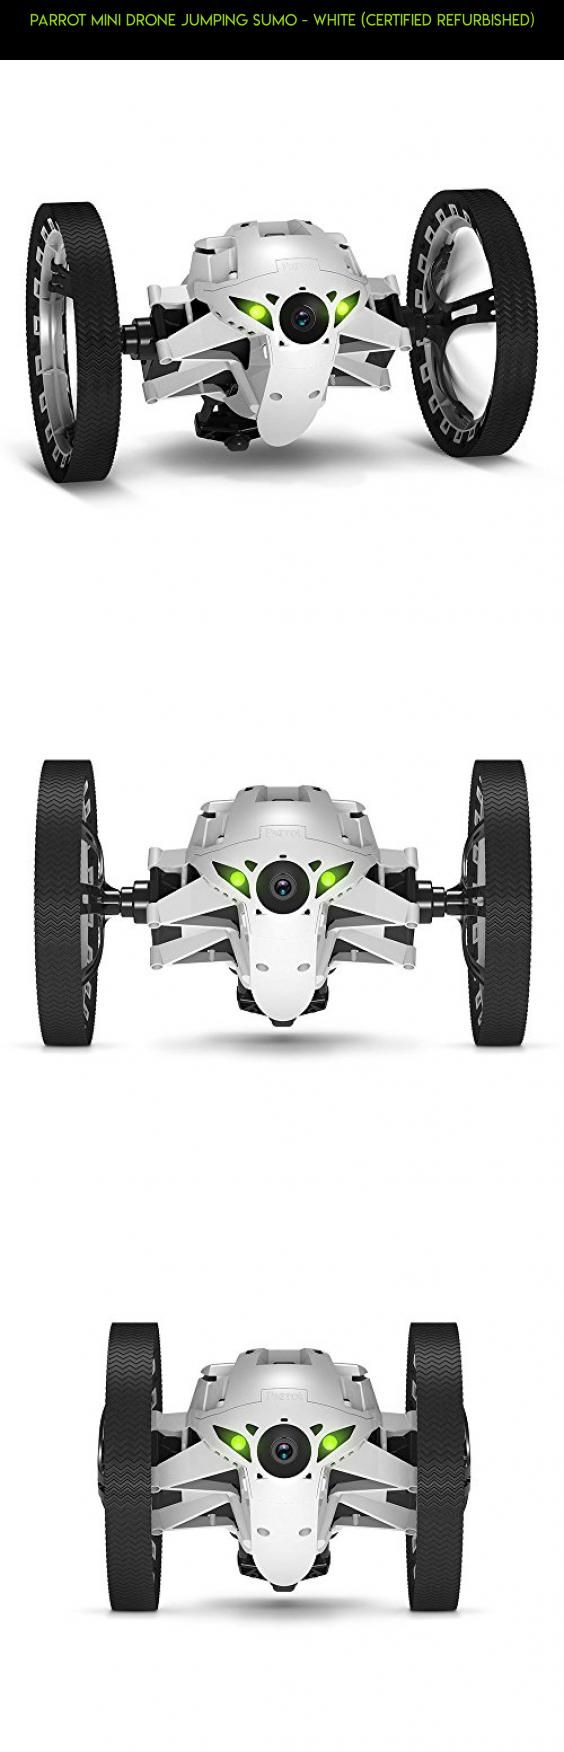 Parrot Mini Drone Jumping Sumo - White (Certified Refurbished) #camera #parrot #products #shopping #drone #1 #plans #racing #tech #technology #gadgets #fpv #kit #parts #drone